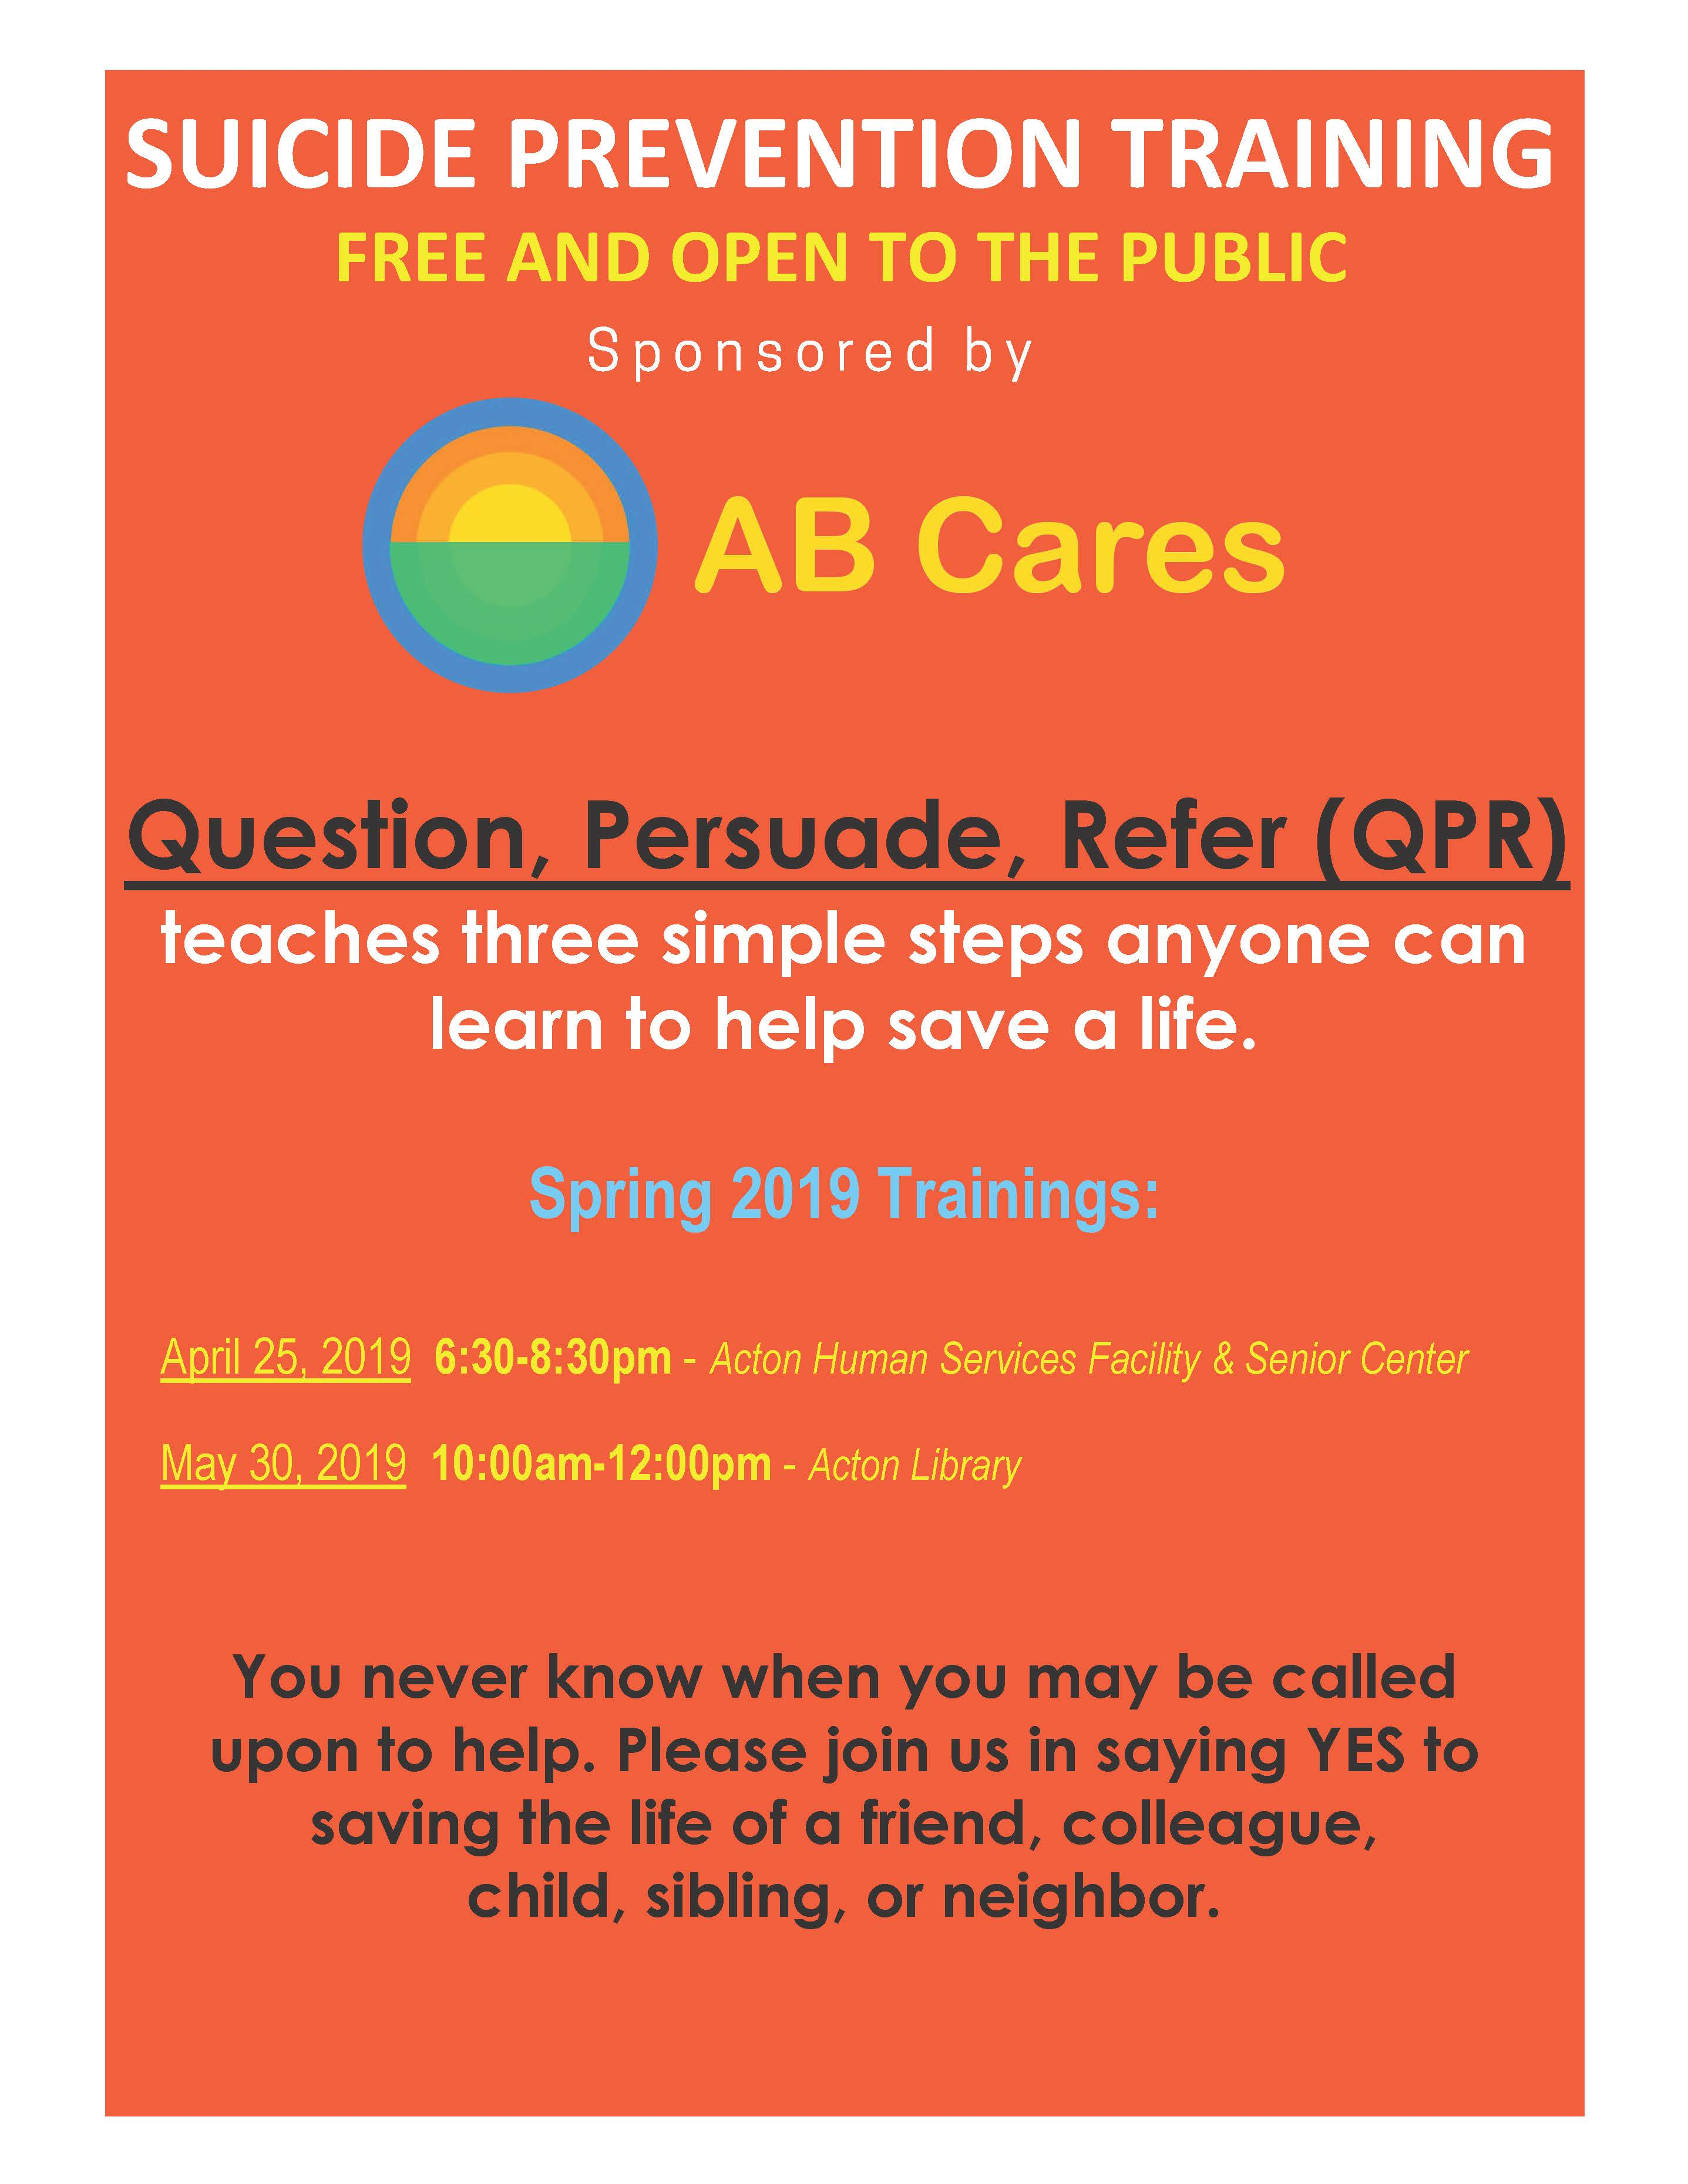 SUICIDE PREVENTION TRAINING FREE AND OPERN TO THE PUBLIC